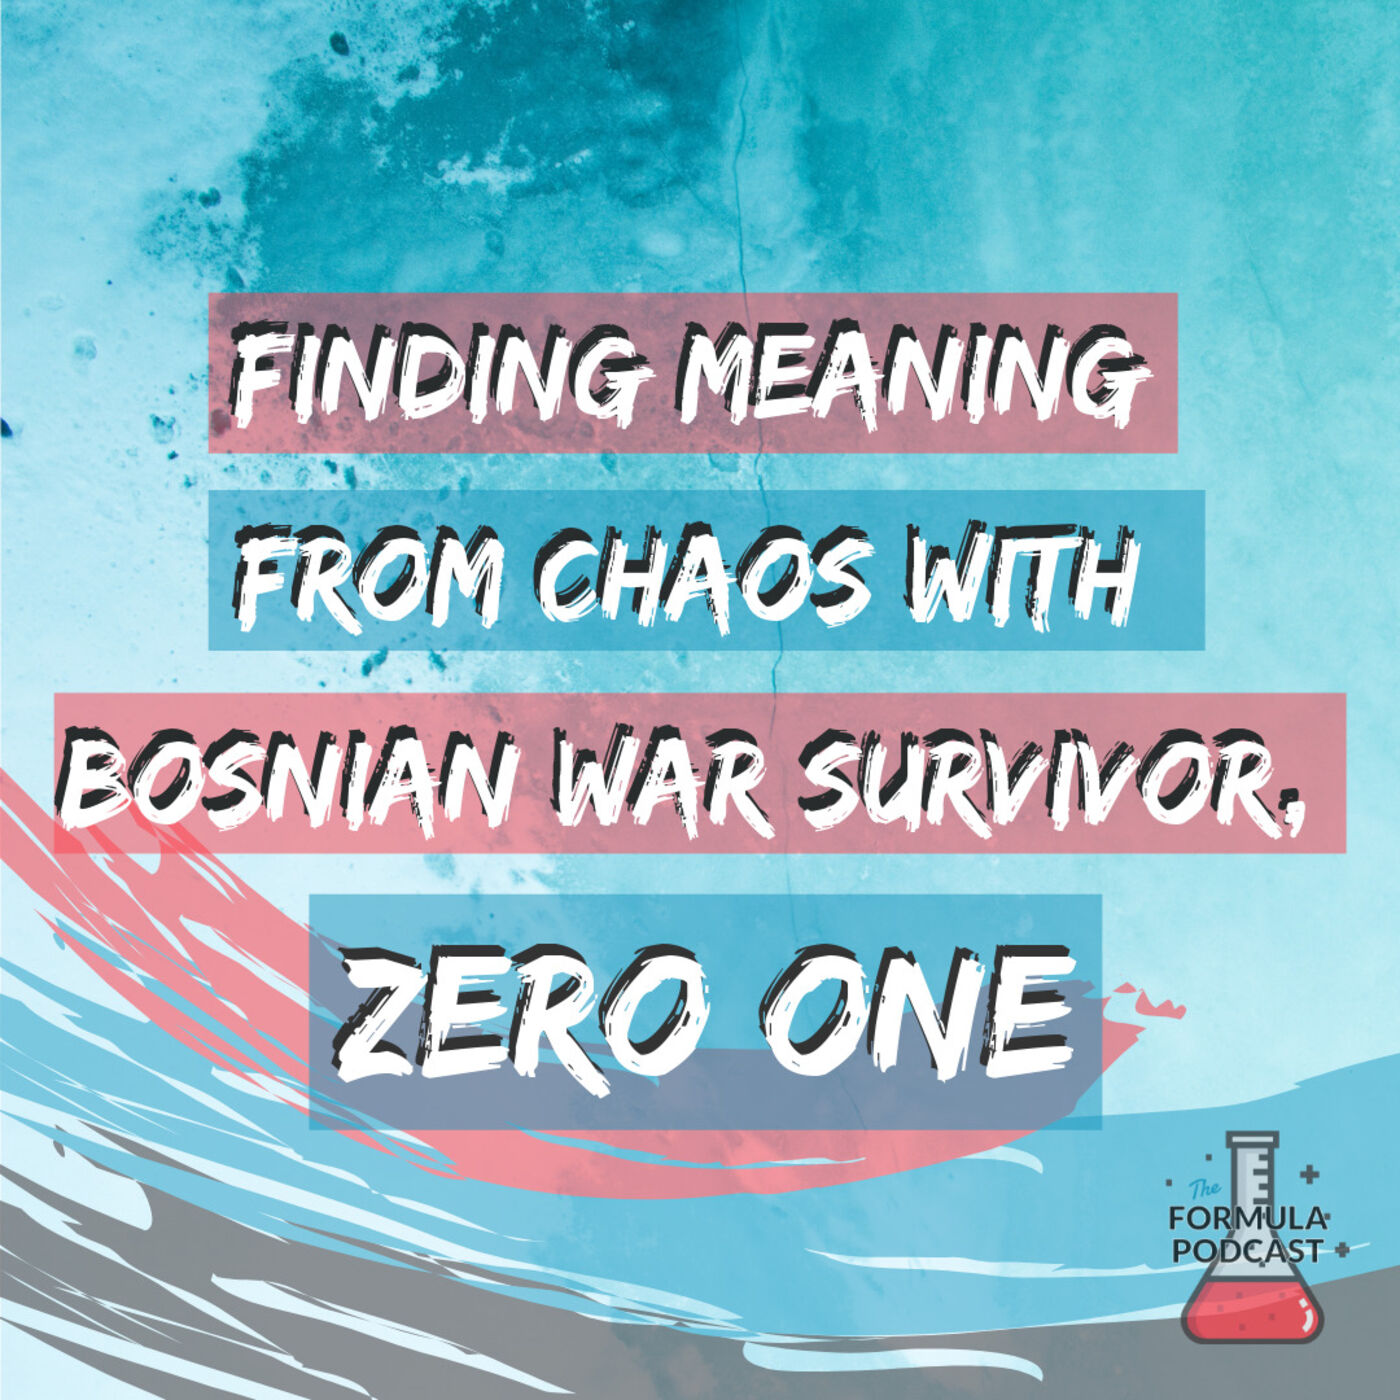 Finding Meaning From Chaos with Bosnian War Survivor, Zero One - #95